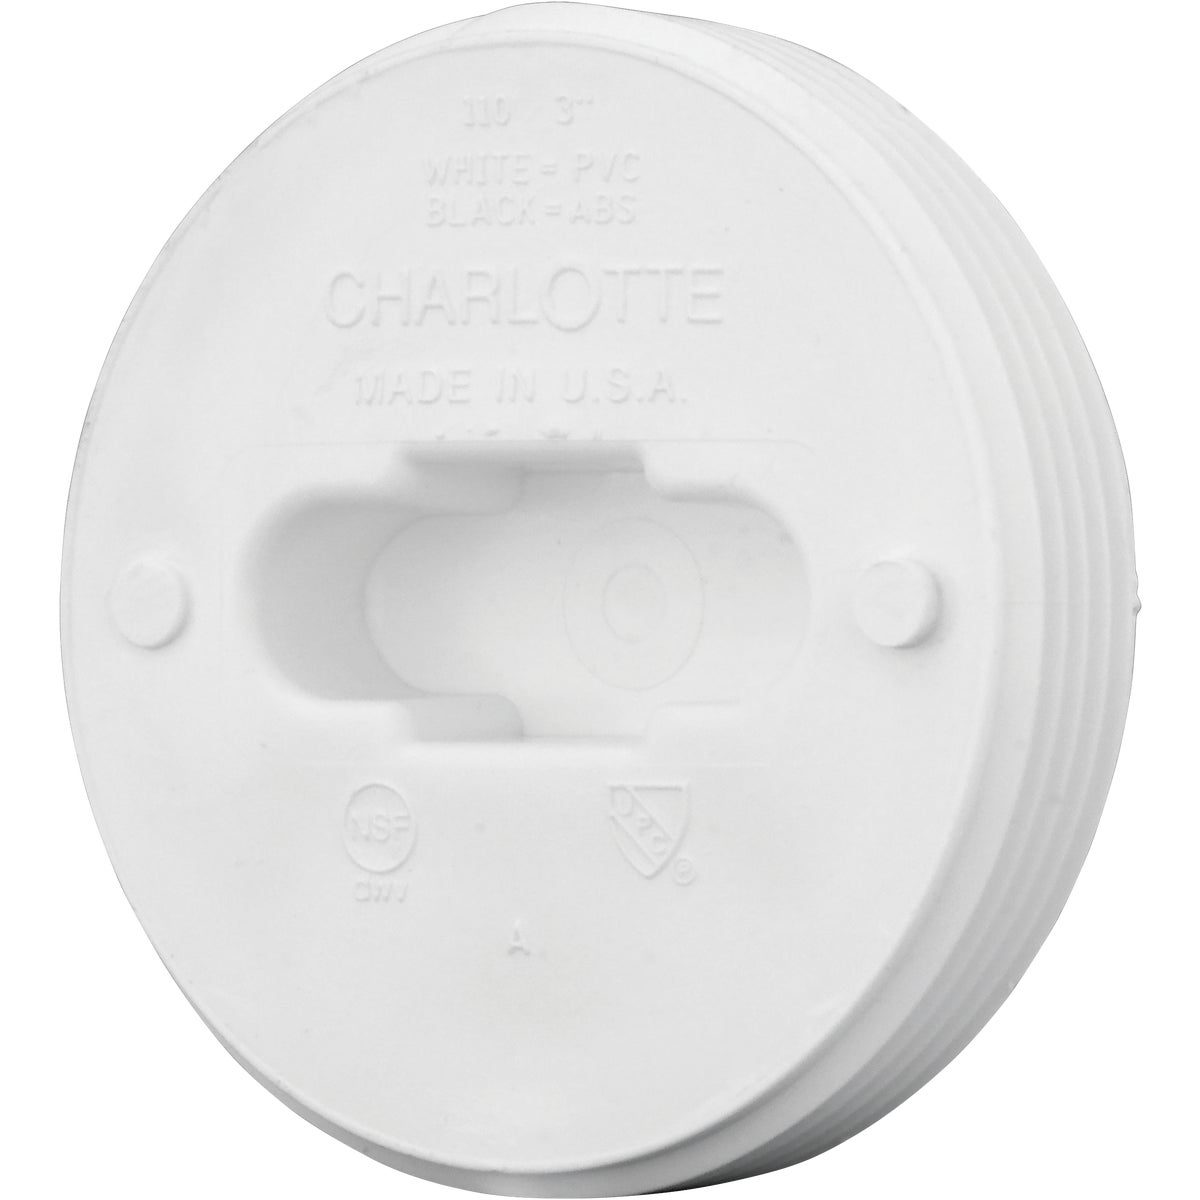 "3"" TOE-SAVER FLOOR PLUG - 71853 by Genova Inc  Pvc Dwv"